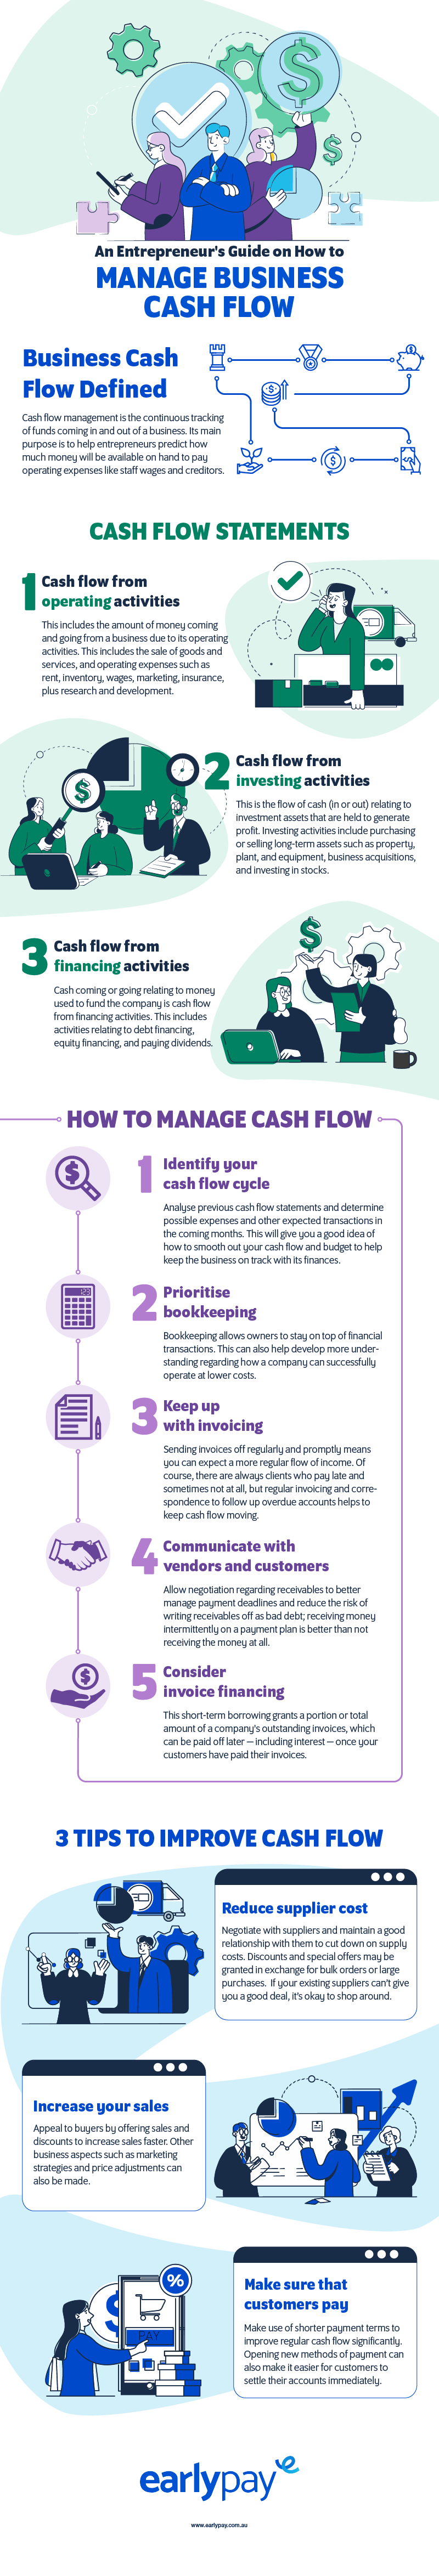 Infog_An Entrepreneurs Guide on How to Manage Business Cash Flow